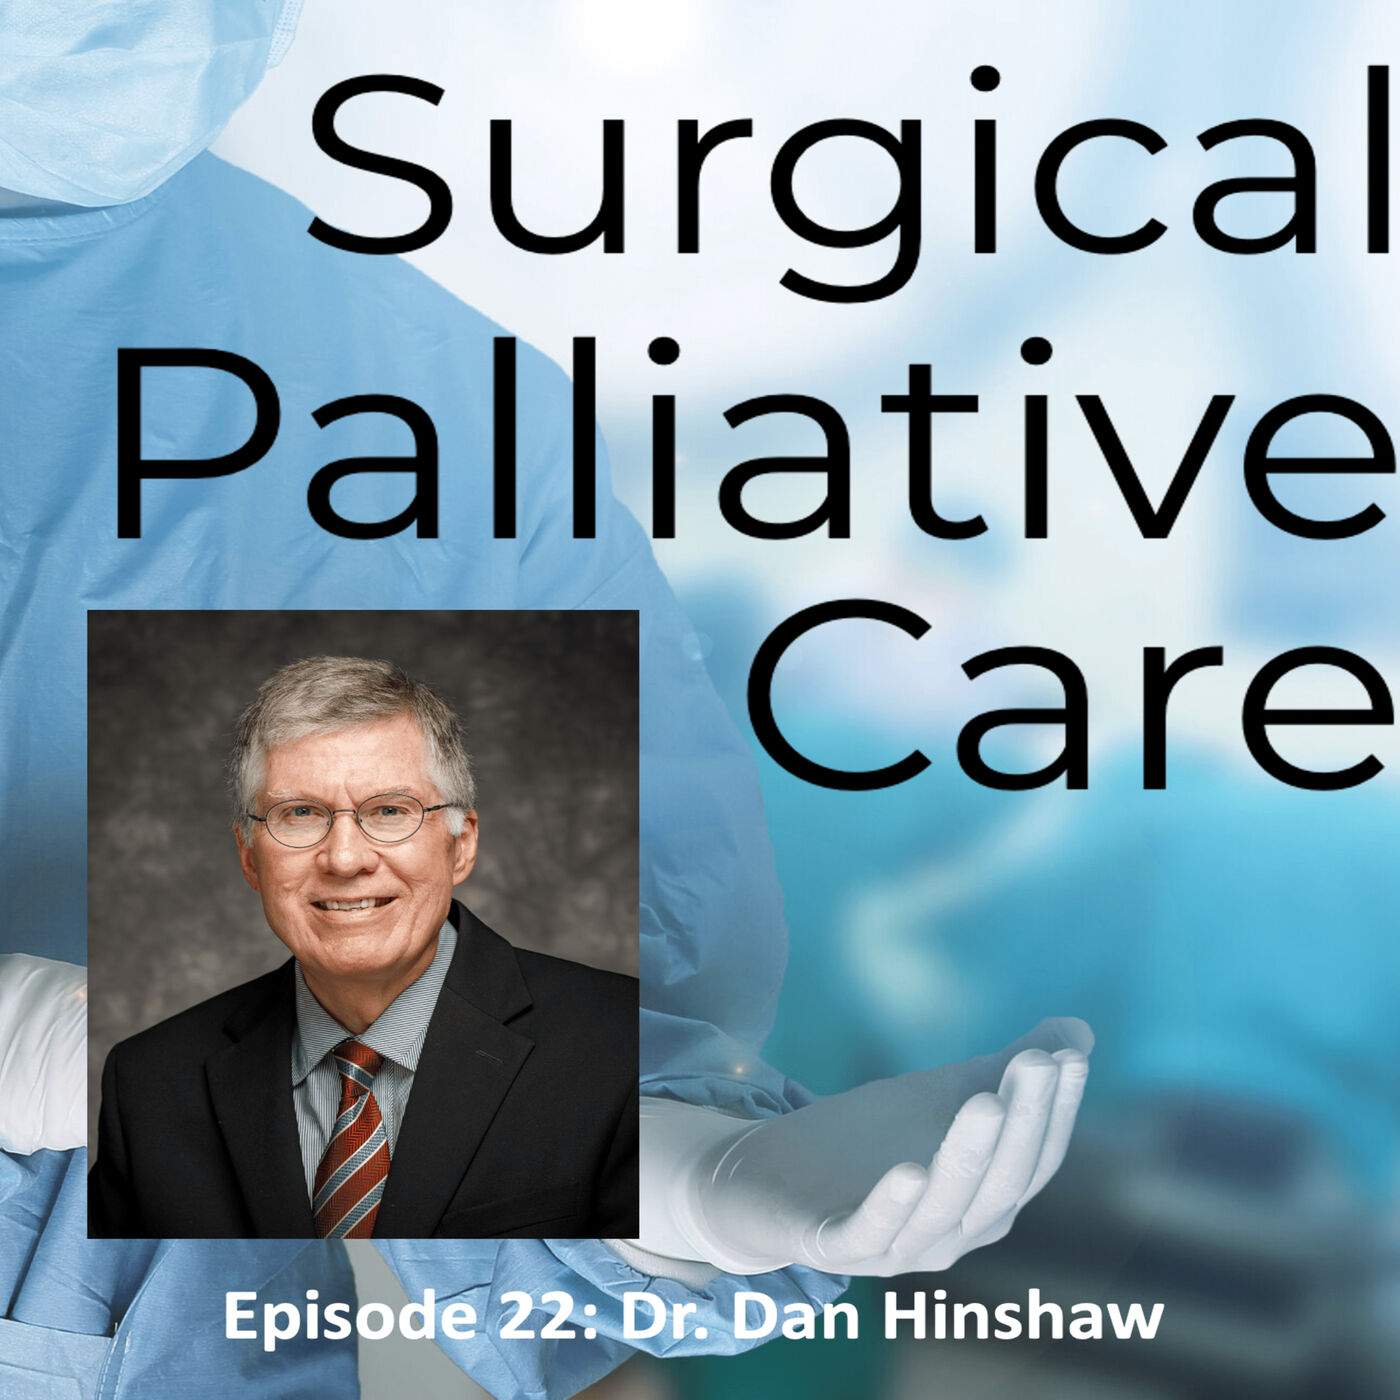 Dr. Dan Hinshaw:  Spirituality and Surgical Palliative Care